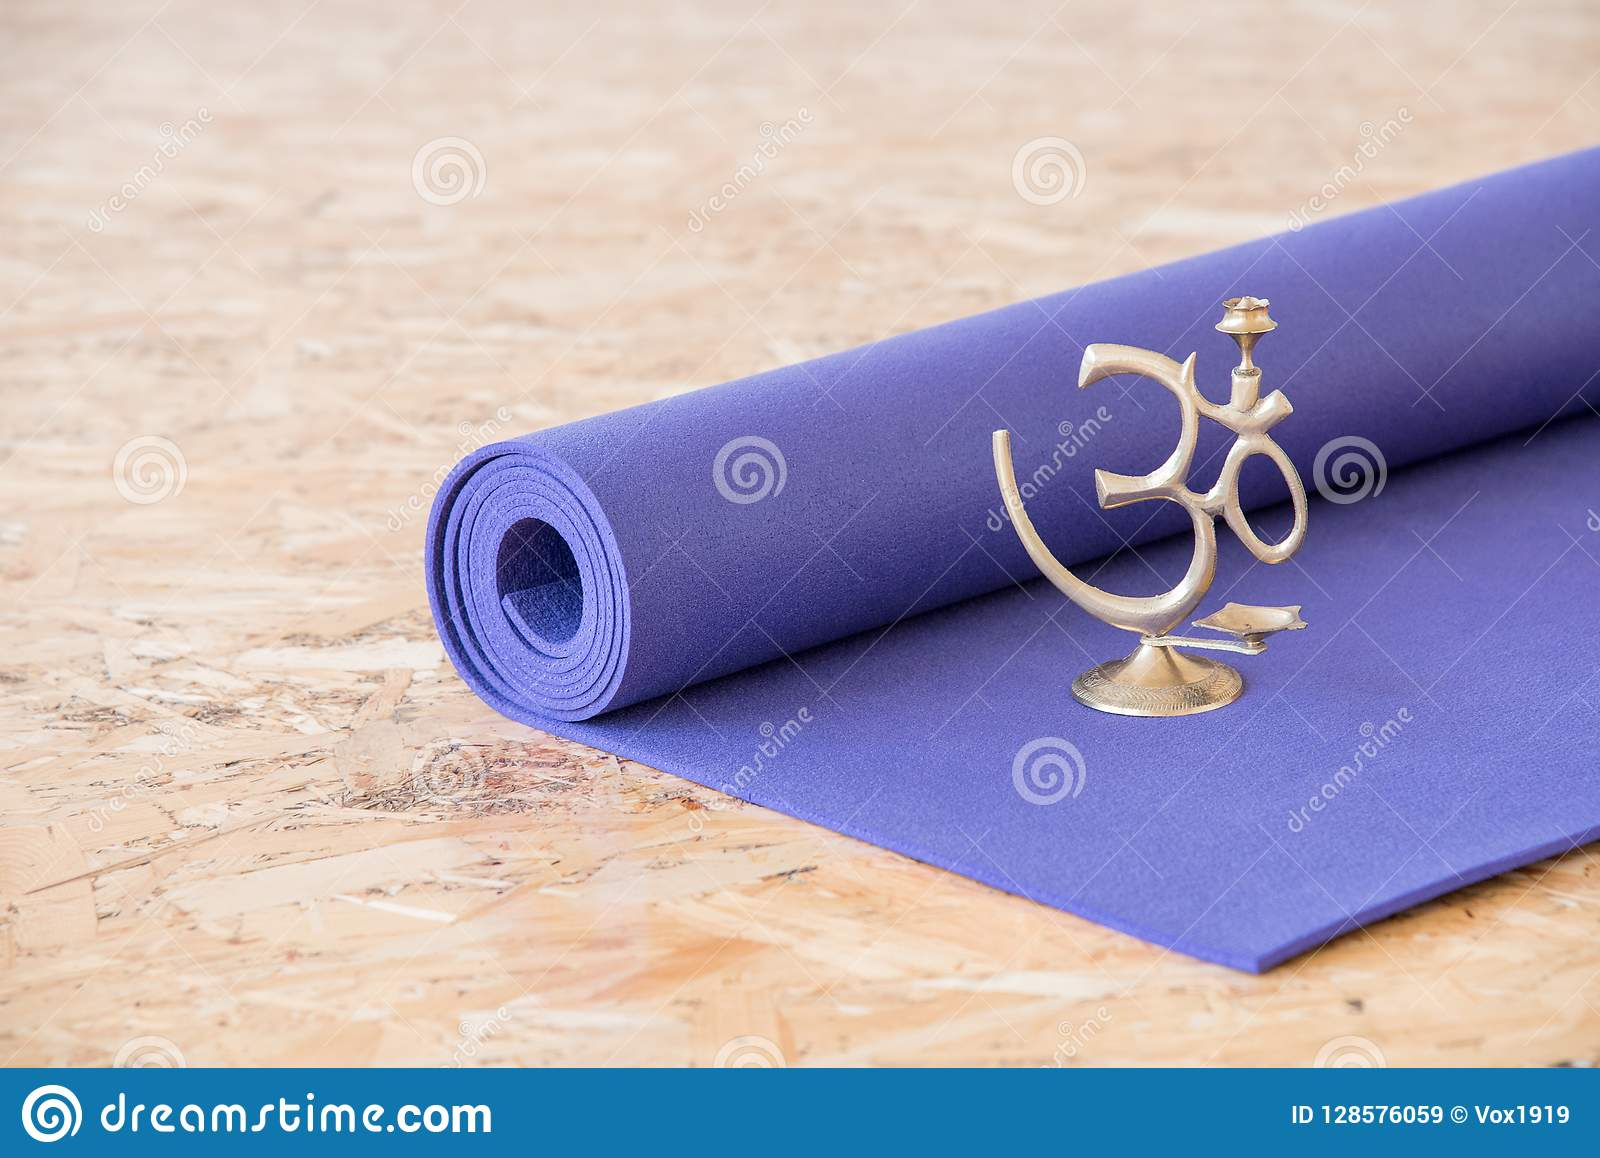 om meditation sign on a yoga mat in the training room stock image